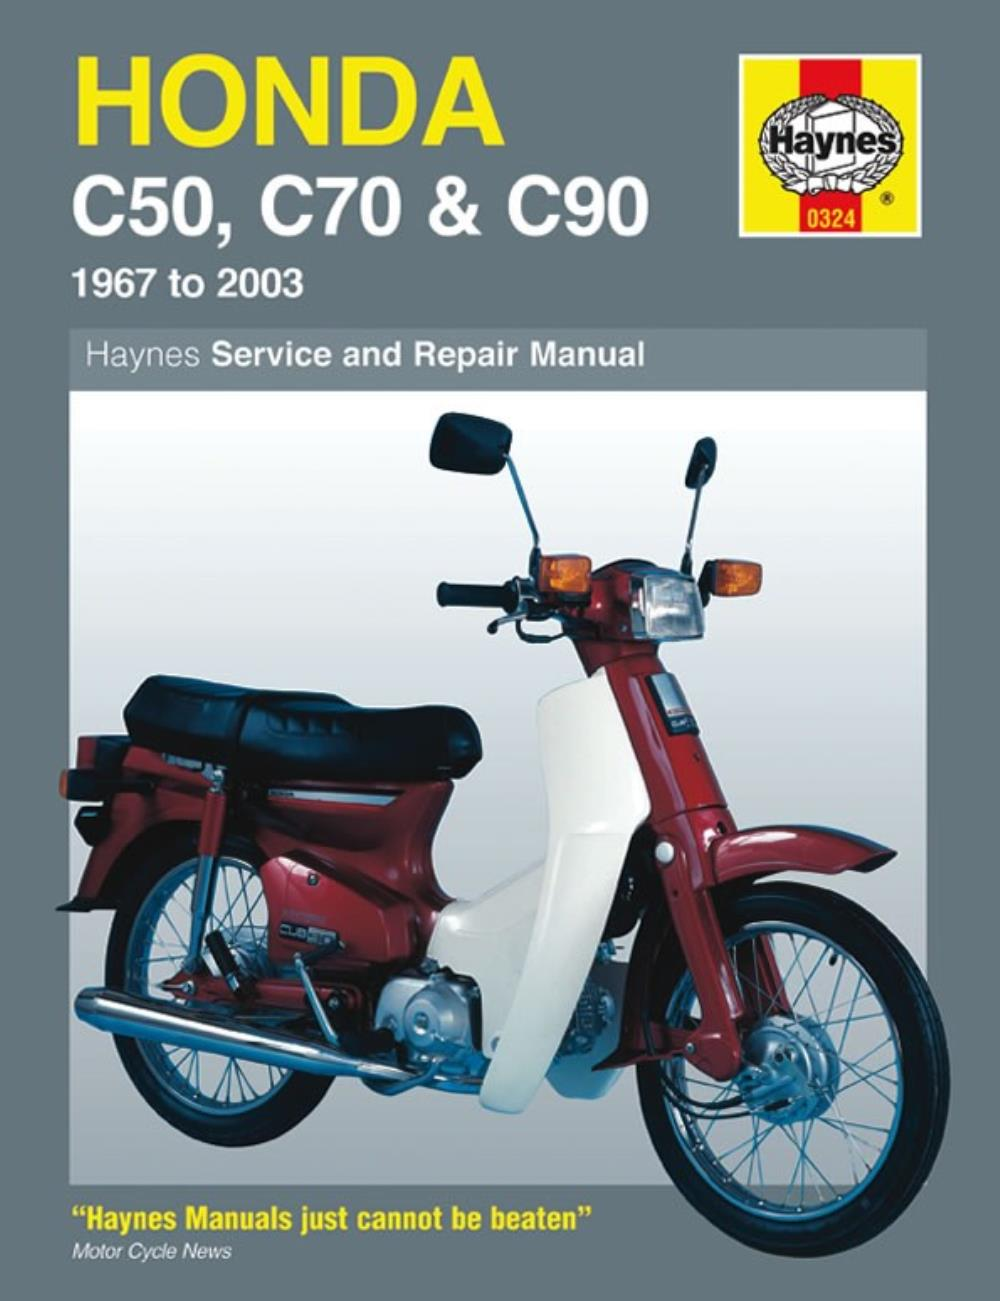 workshop manual honda c50 1967 1985  c70 1972 1986  c90 workshop manual honda c90 workshop manual honda cbr 125